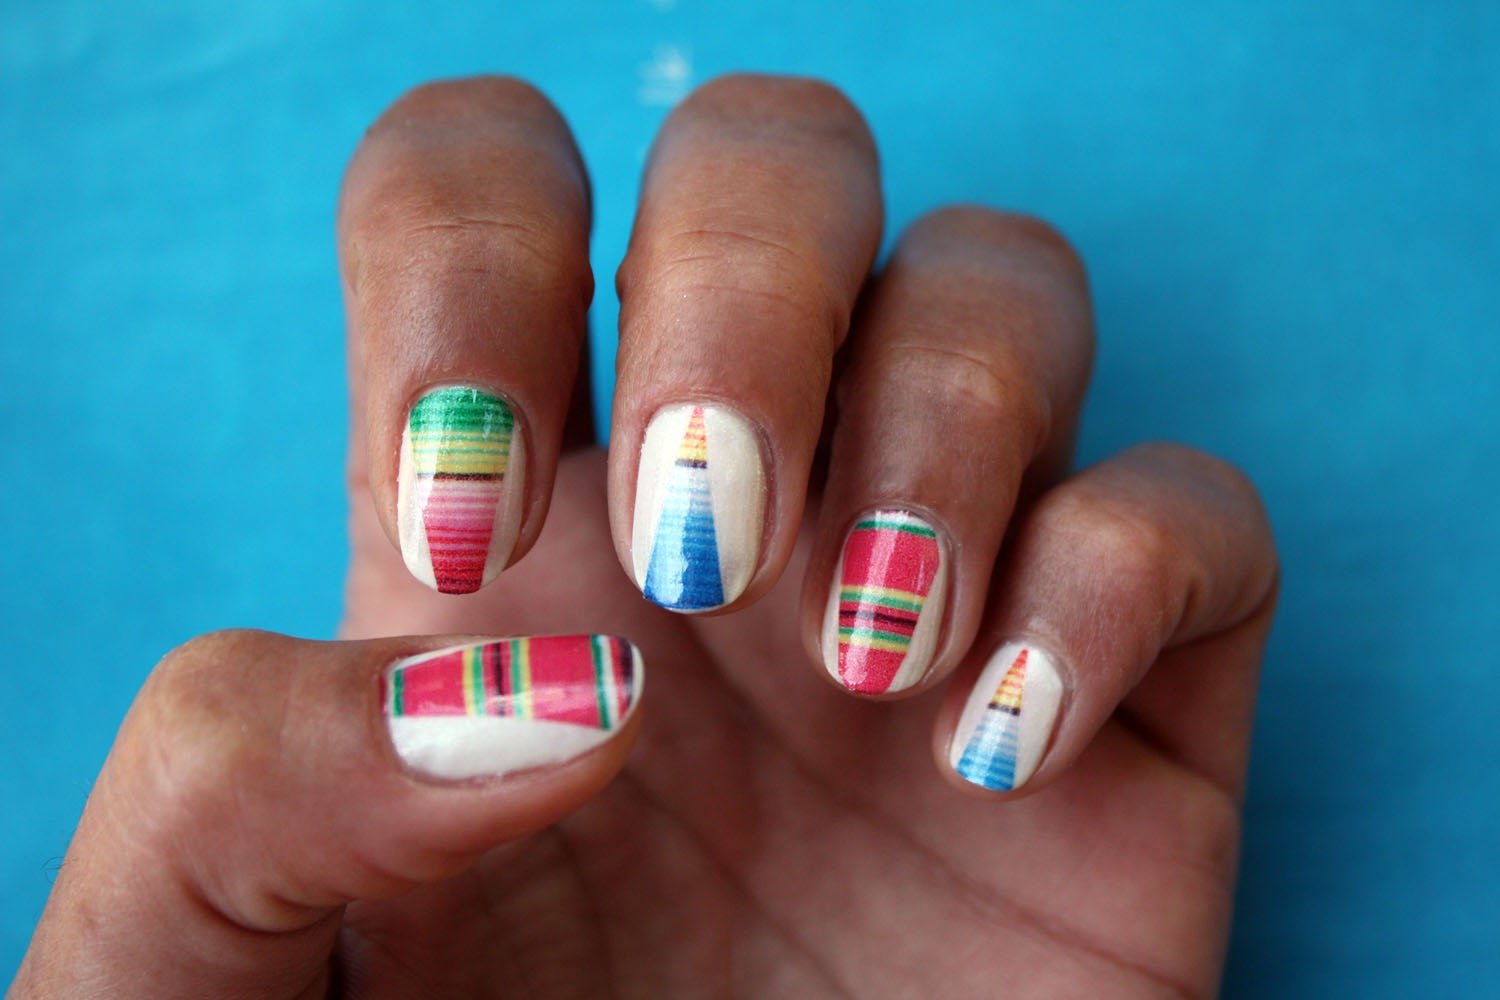 Nail art etsy ~ Beautify themselves with sweet nails